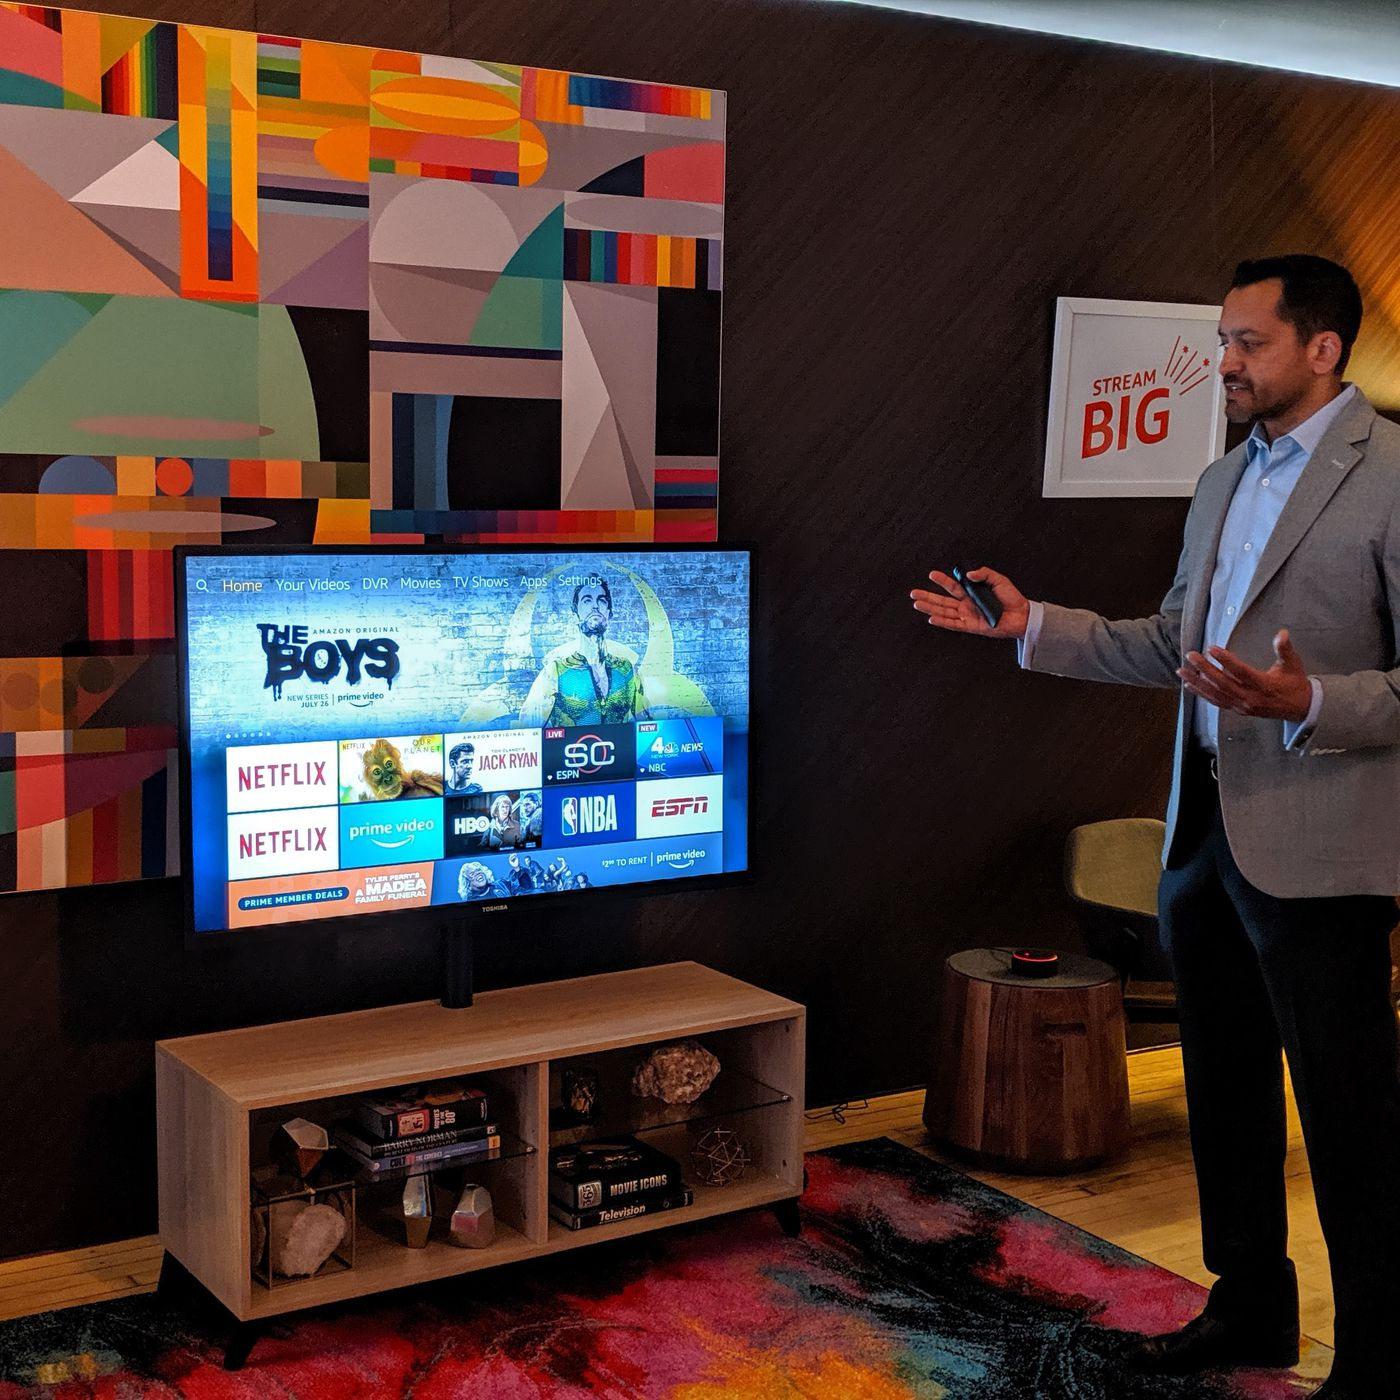 Amazon launches its first inexpensive Fire TV televisions with Dolby